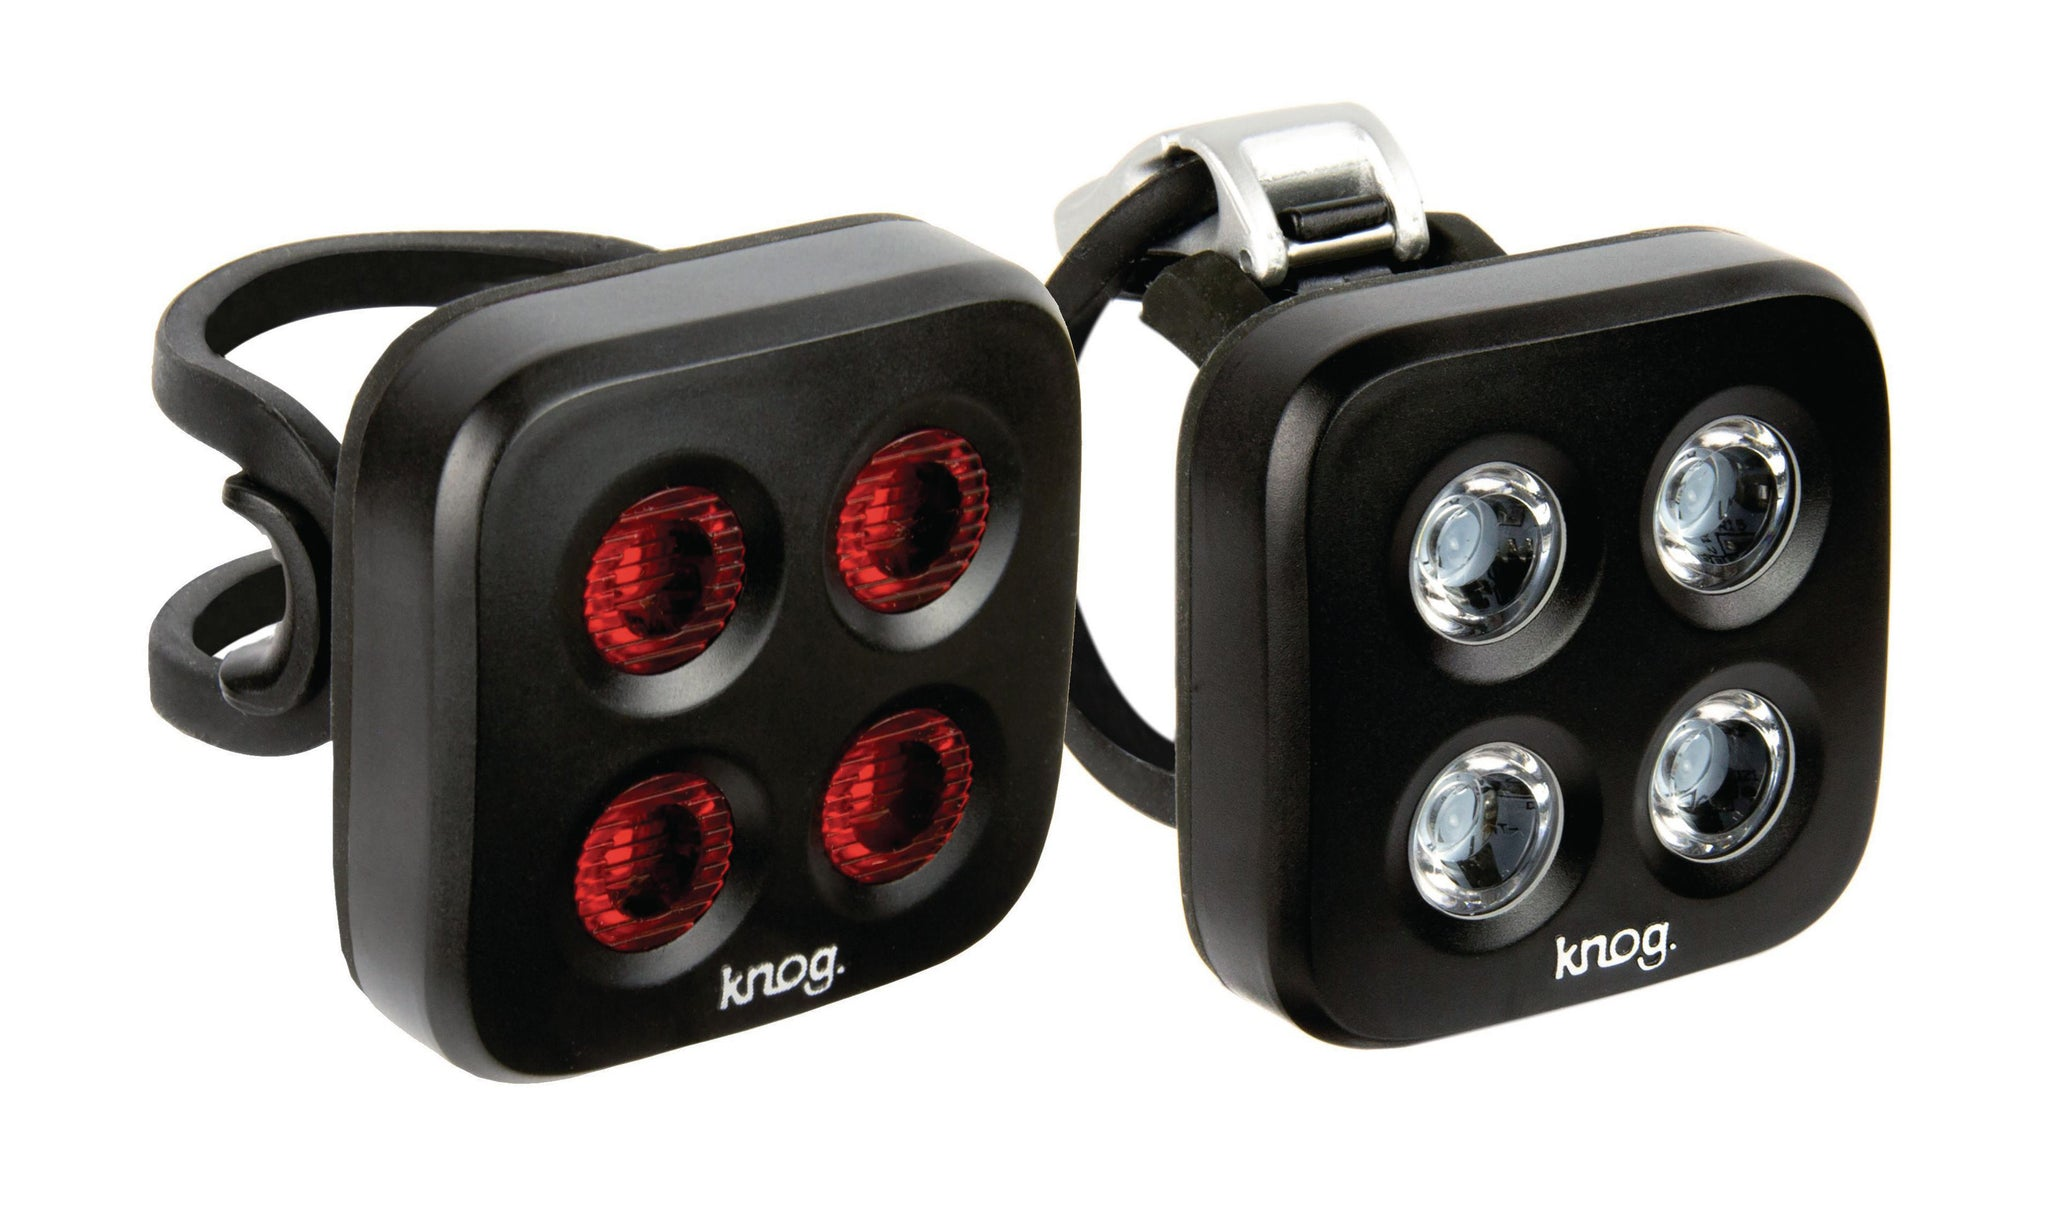 Knog Blinder Lights USB